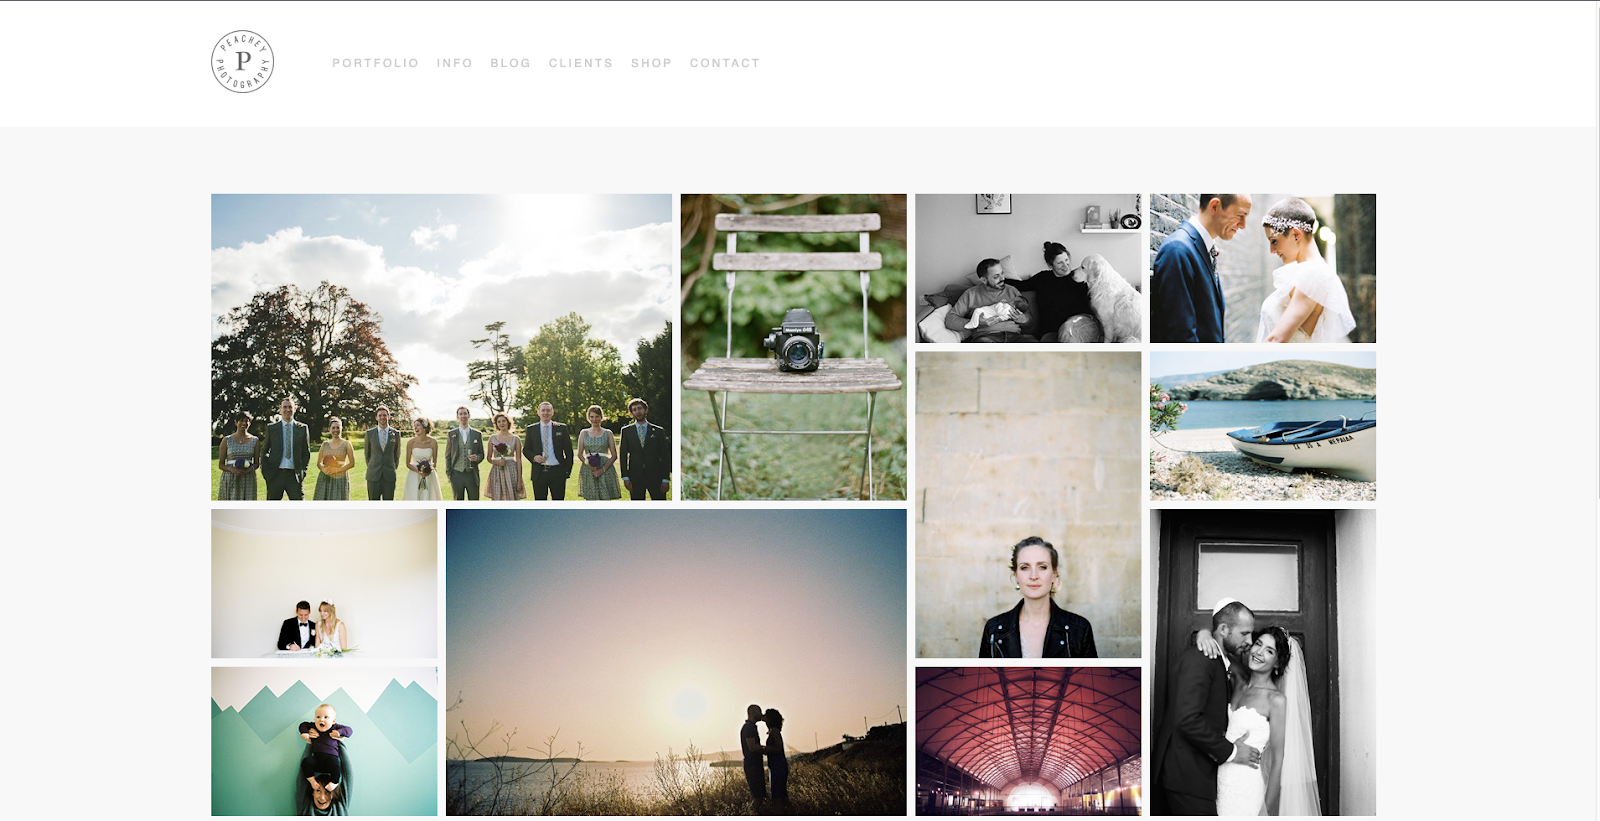 London-based photographer Katharine Peachey uses a minimalist website design to accentuate her photography portfolio.